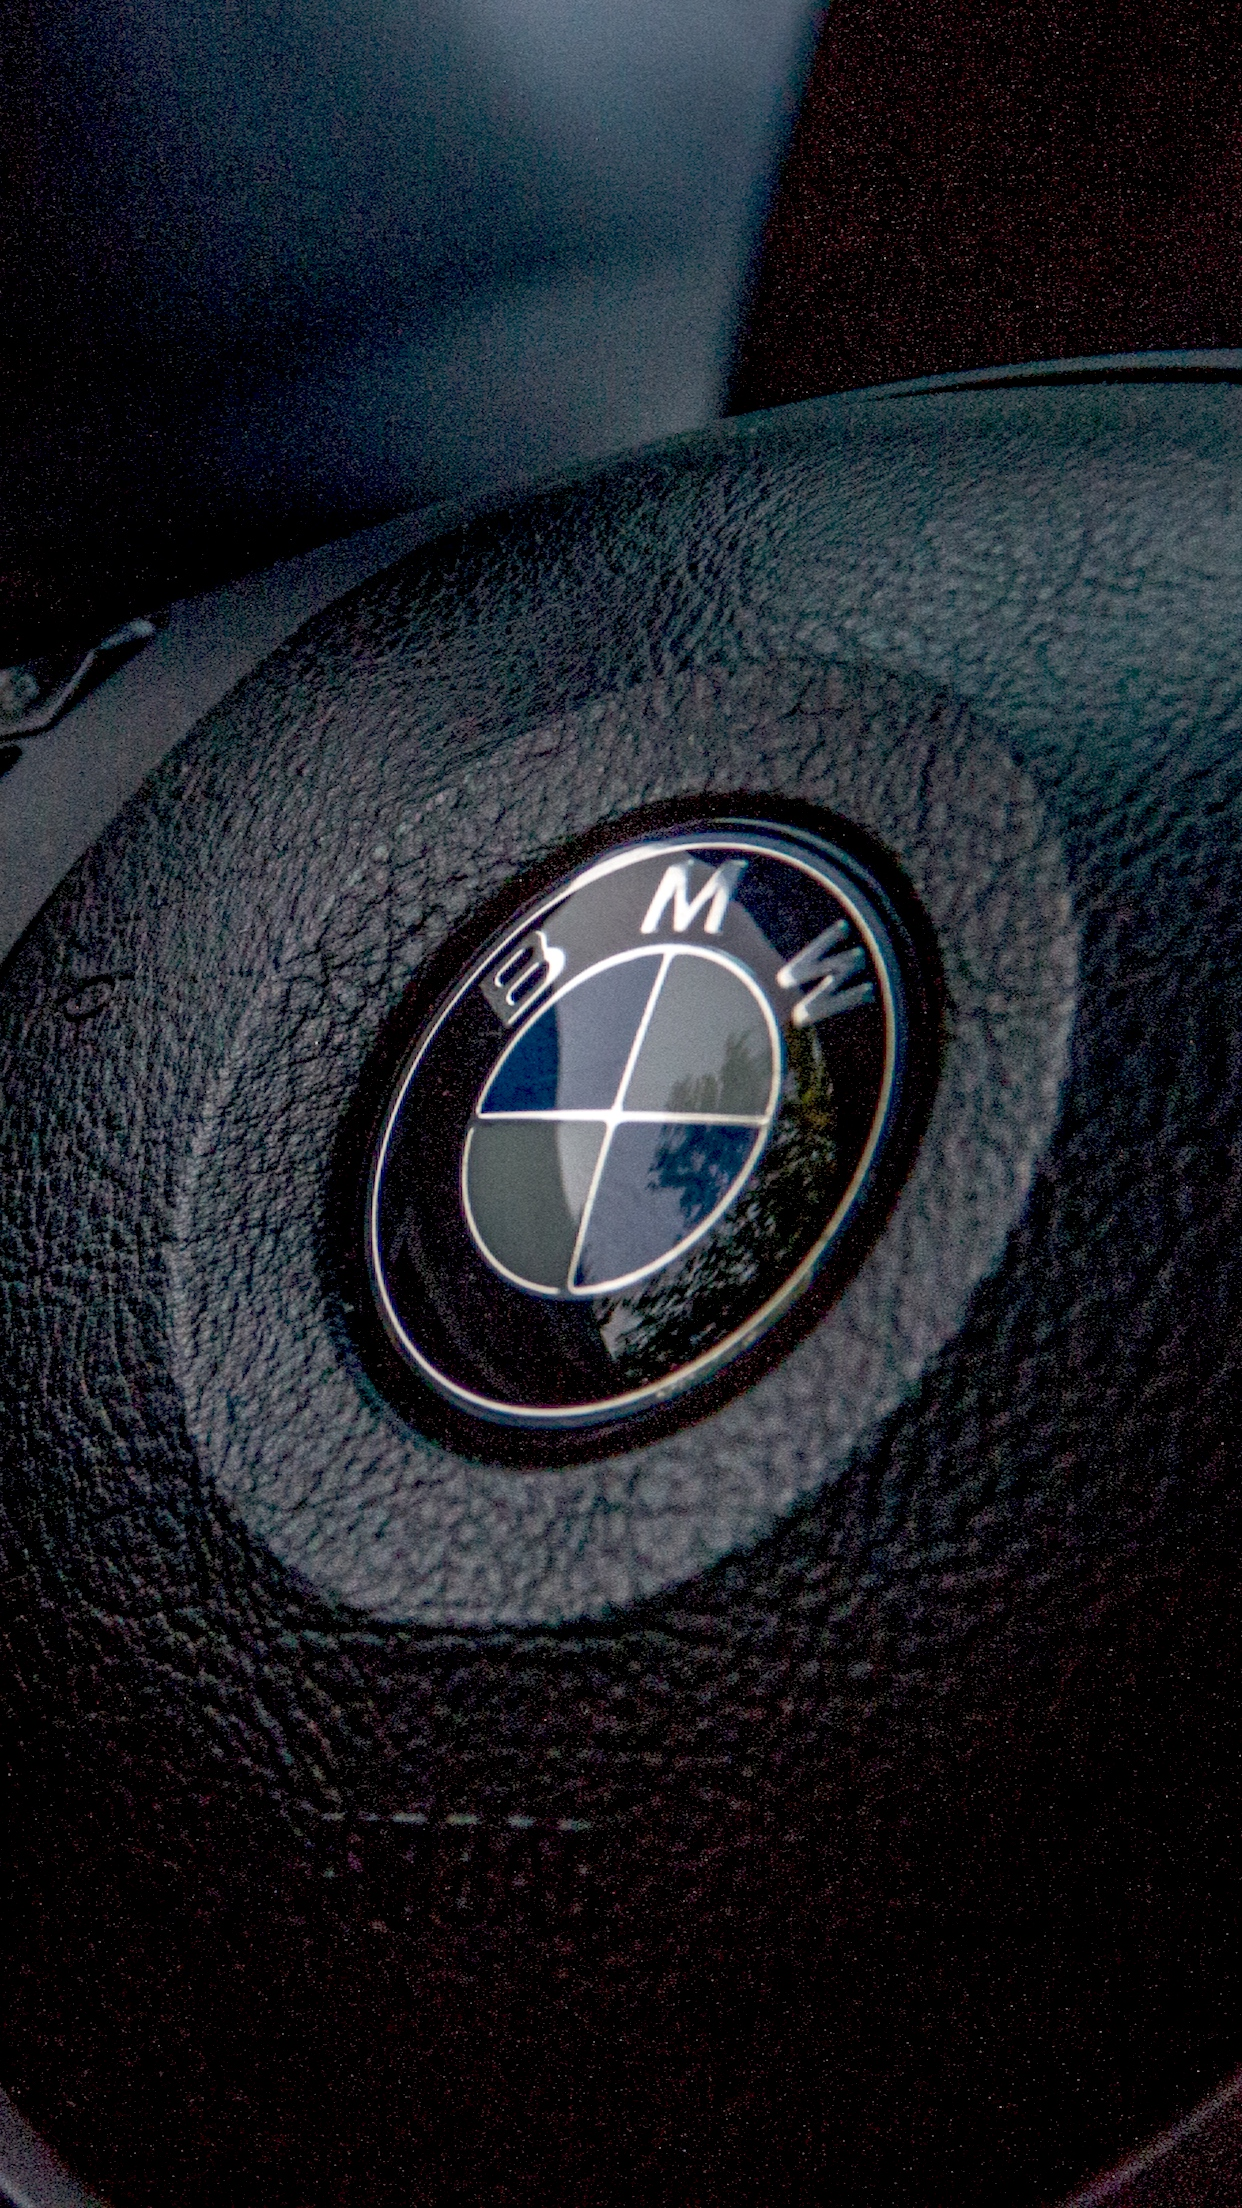 BMW Logo iPhone Wallpaper Wallpapers t